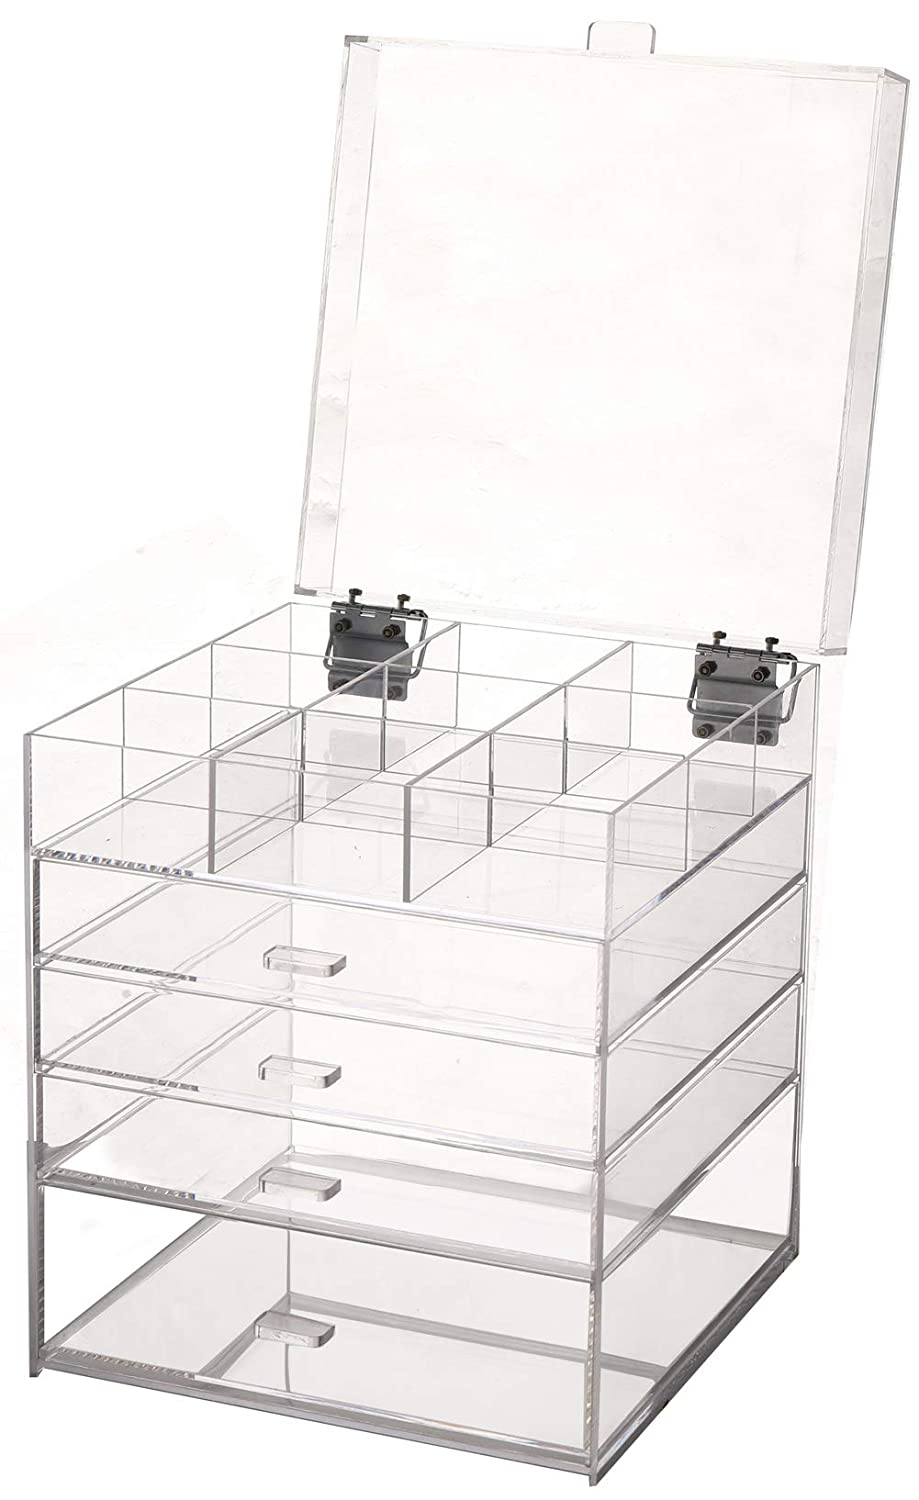 Sooyee Acrylic Large Cube 5 Tier Deep Drawers Cosmetic Organizer with Lid,The Lid can be Upright at 90 Degrees,Handmade Multifunction Makeup Organizer and 9 Grid Divider,Clear